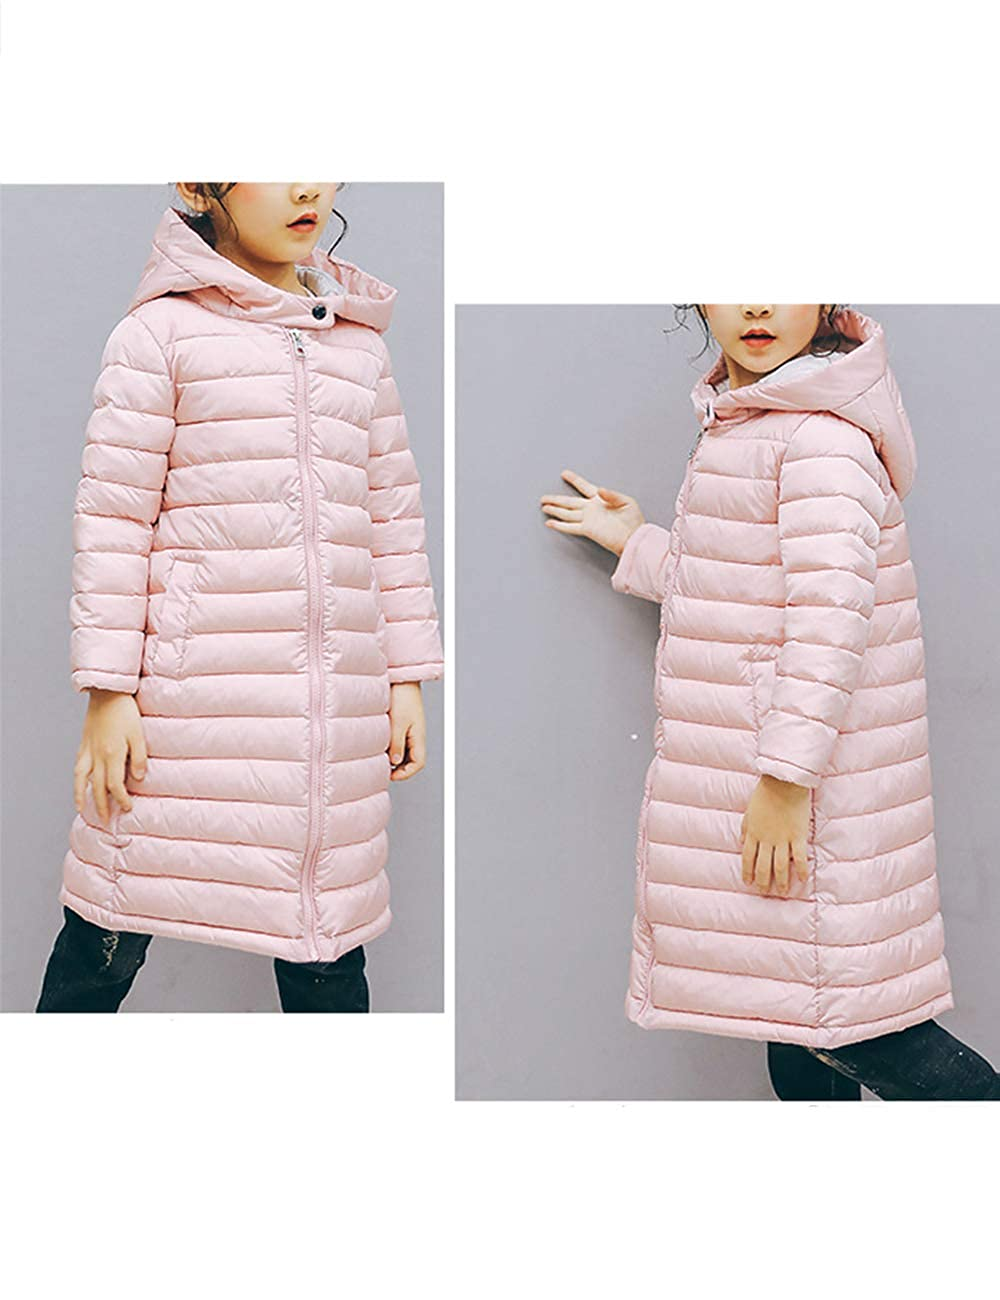 Hooded Long Down Jacket Zhhlinyuan Winter Warm Quilted Coats for Unisex Kids